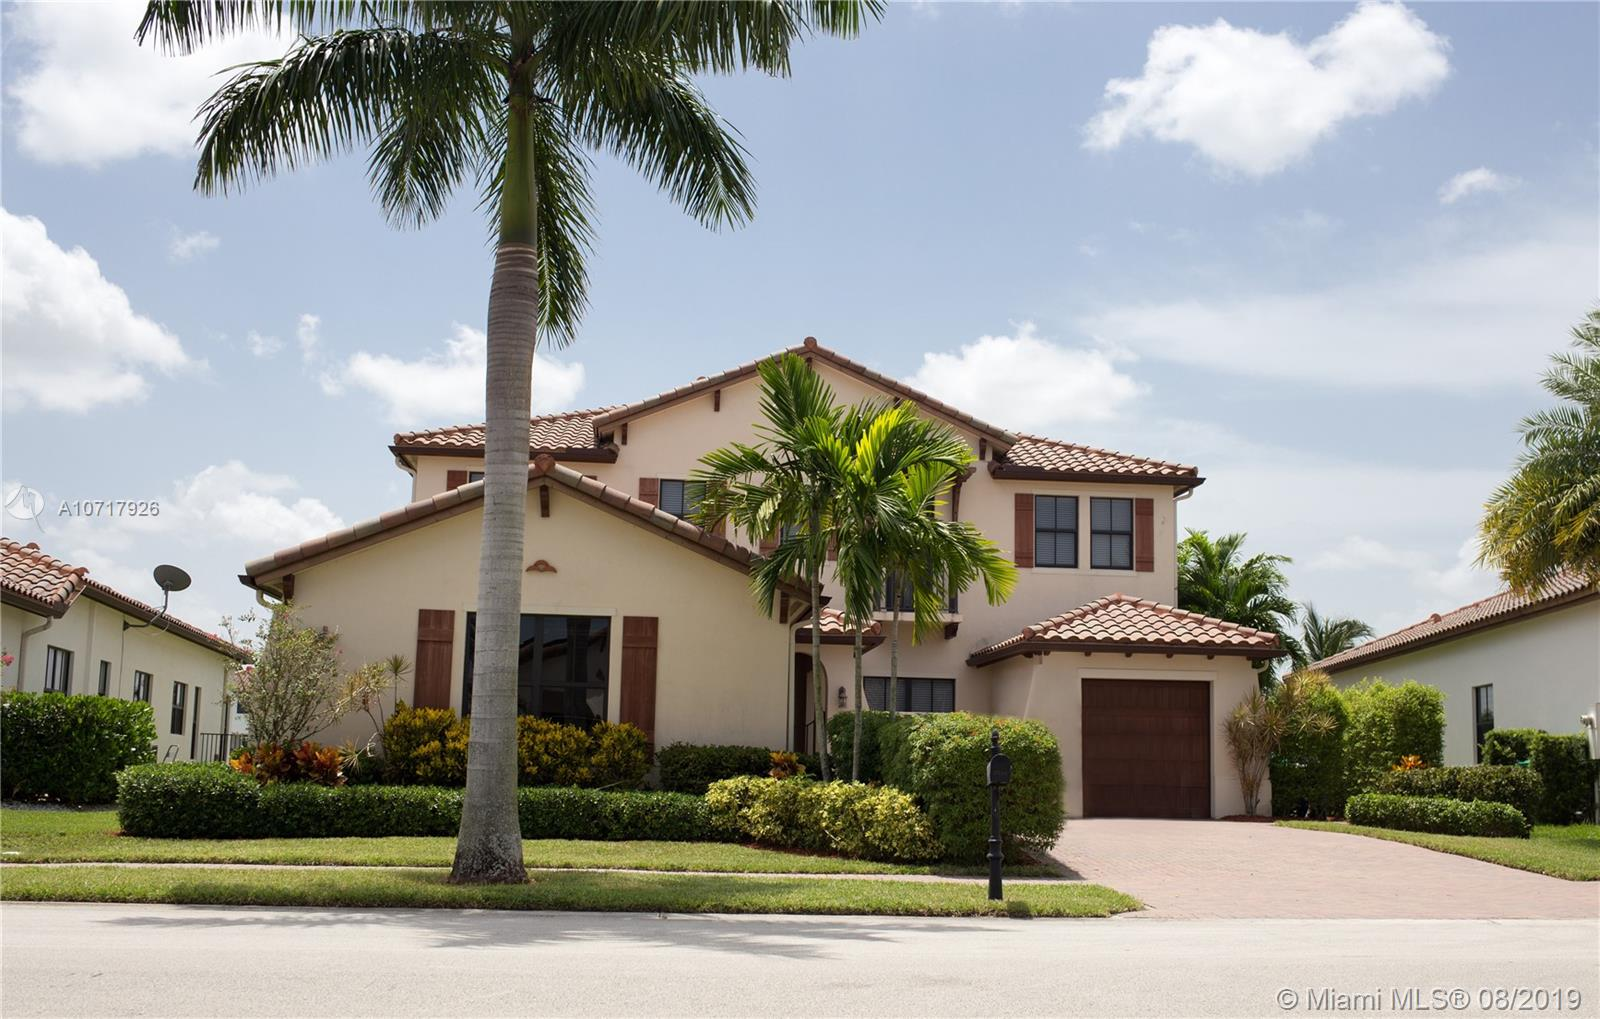 3534 NW 82nd Ter  For Sale A10717926, FL